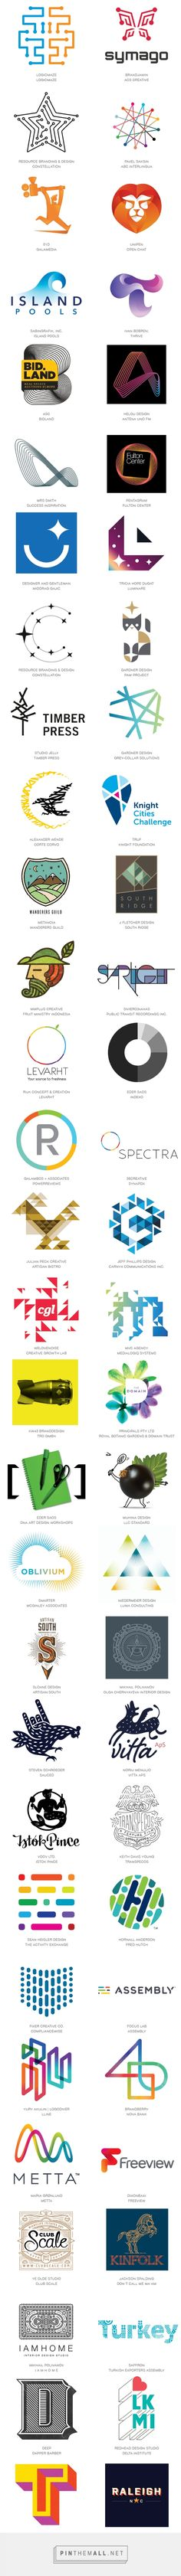 2015 LogoLounge Trend Report on LogoLounge.com... - a grouped images picture - Pin Them All